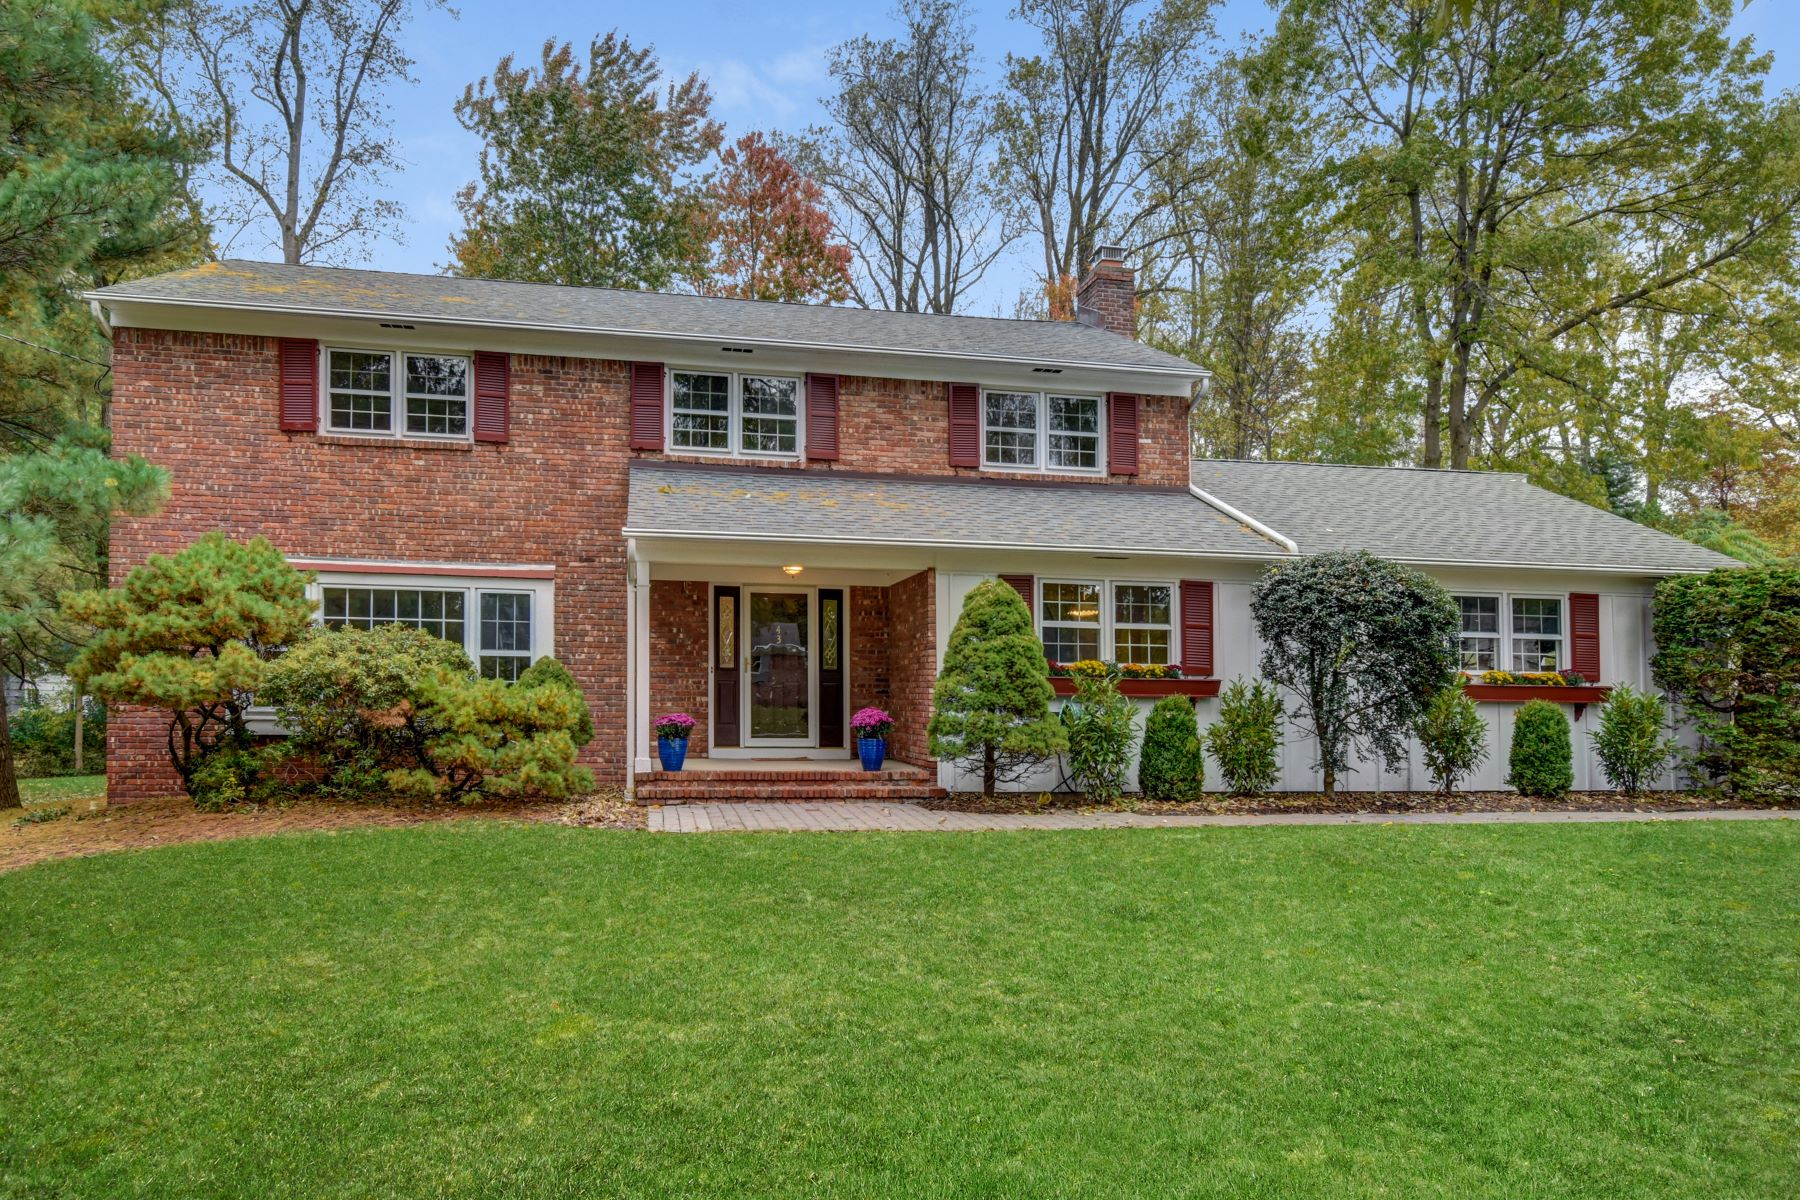 Single Family Homes for Sale at Pride Of Ownership 43 Woodwild Way Berkeley Heights, New Jersey 07922 United States